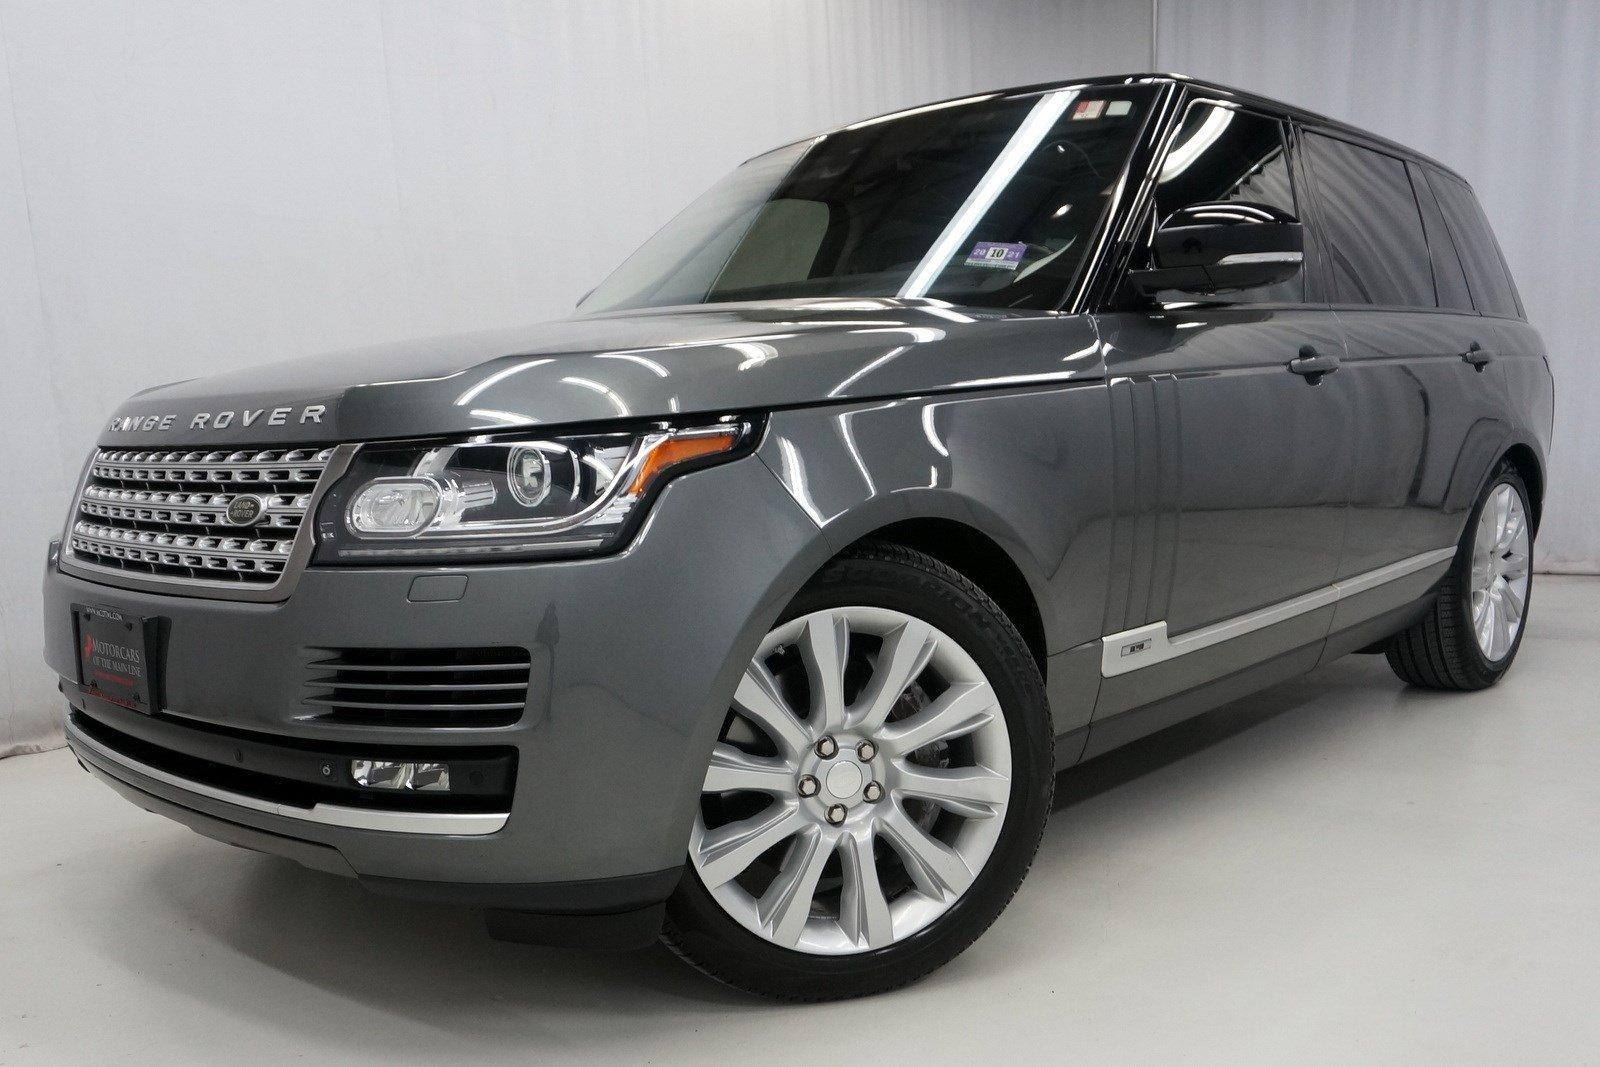 Used 2014 Land Rover Range Rover Supercharged LWB | King of Prussia, PA